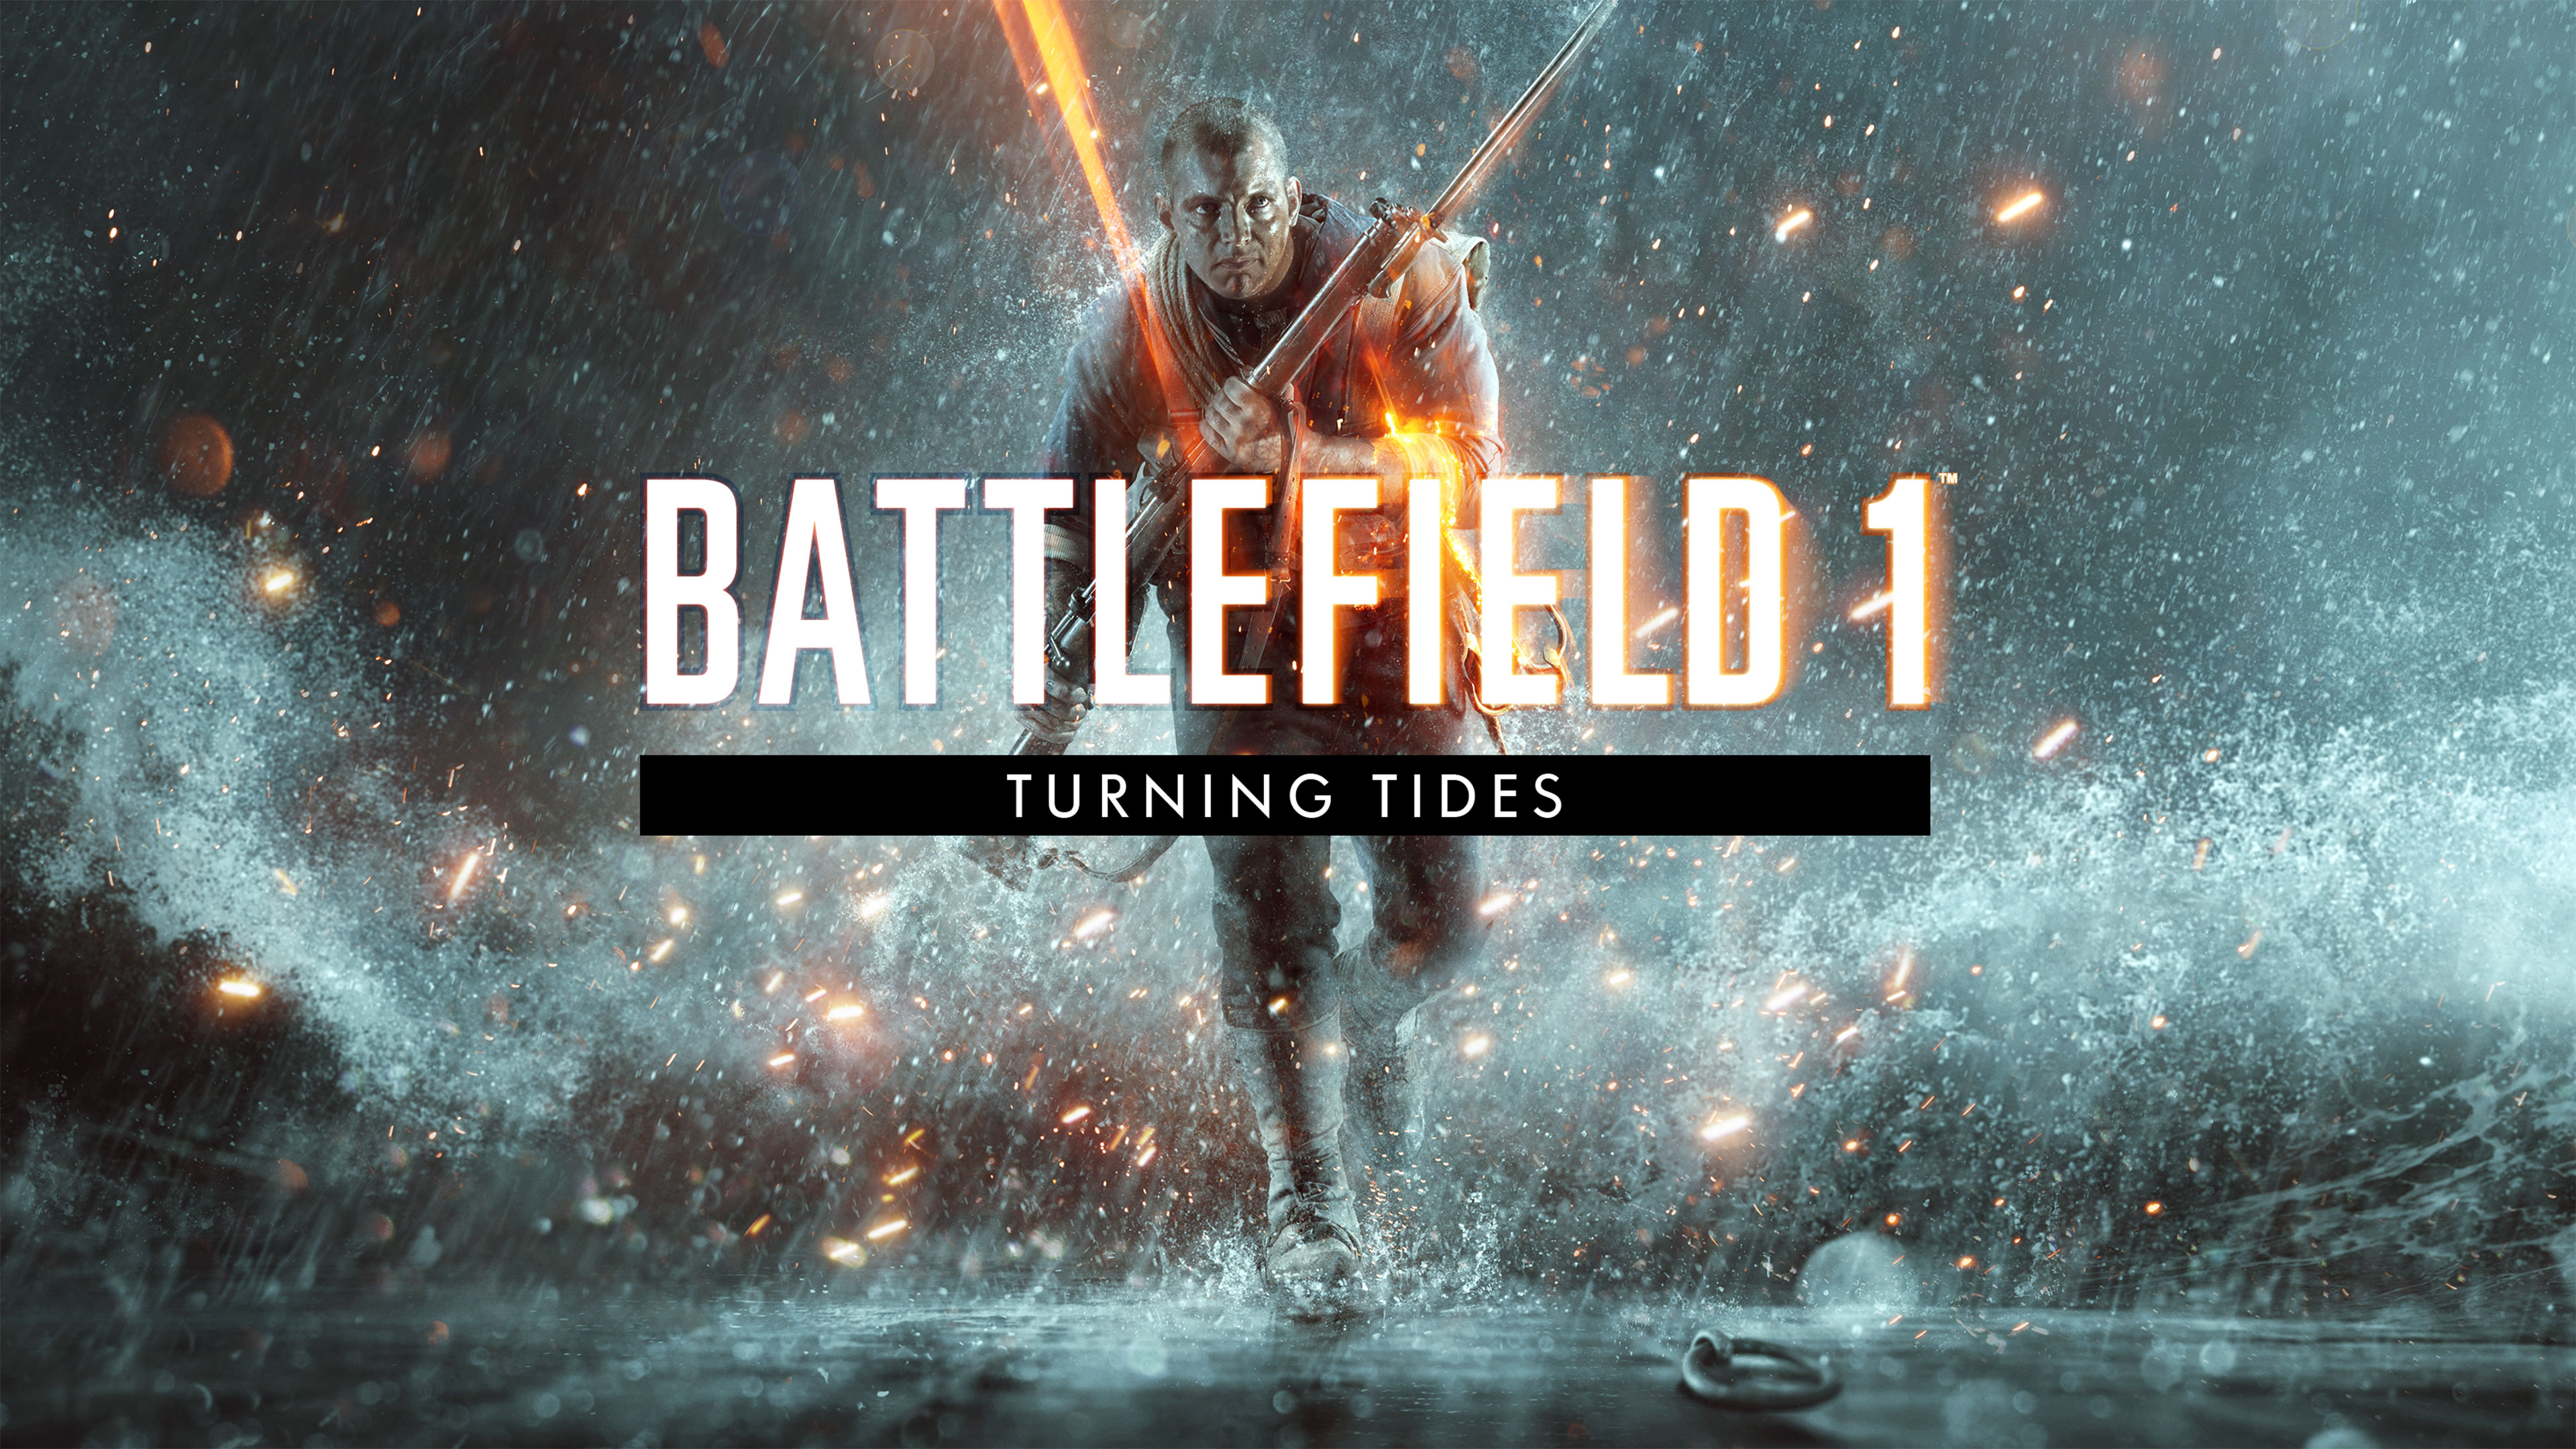 Amazon Com Battlefield 1 Turning Tides Online Game Code Video